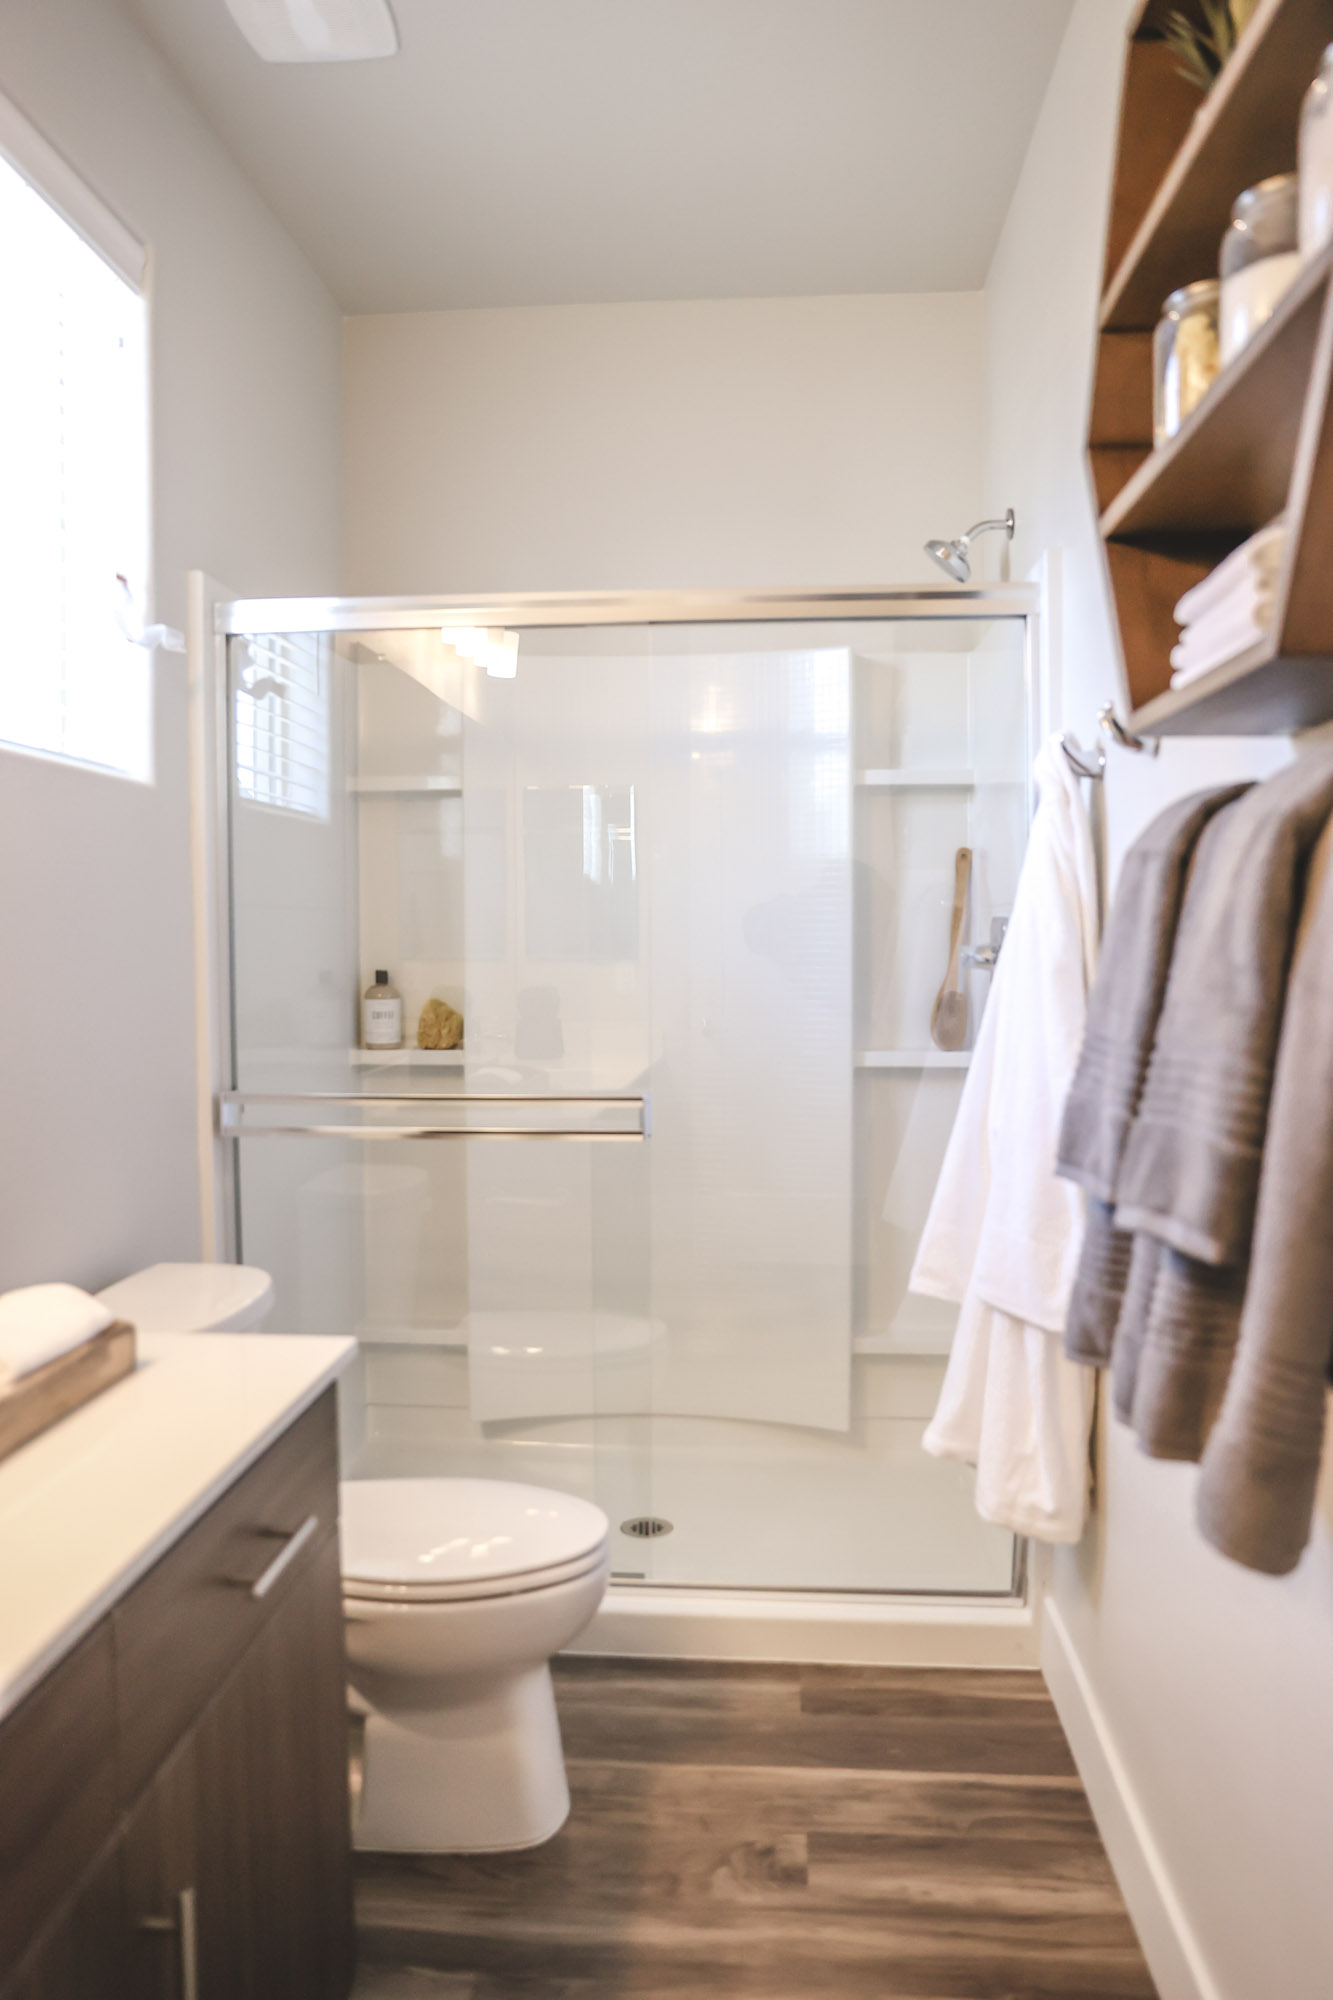 Walk in Showers Available at Olive Marketplace Apartments in Glendale, AZ